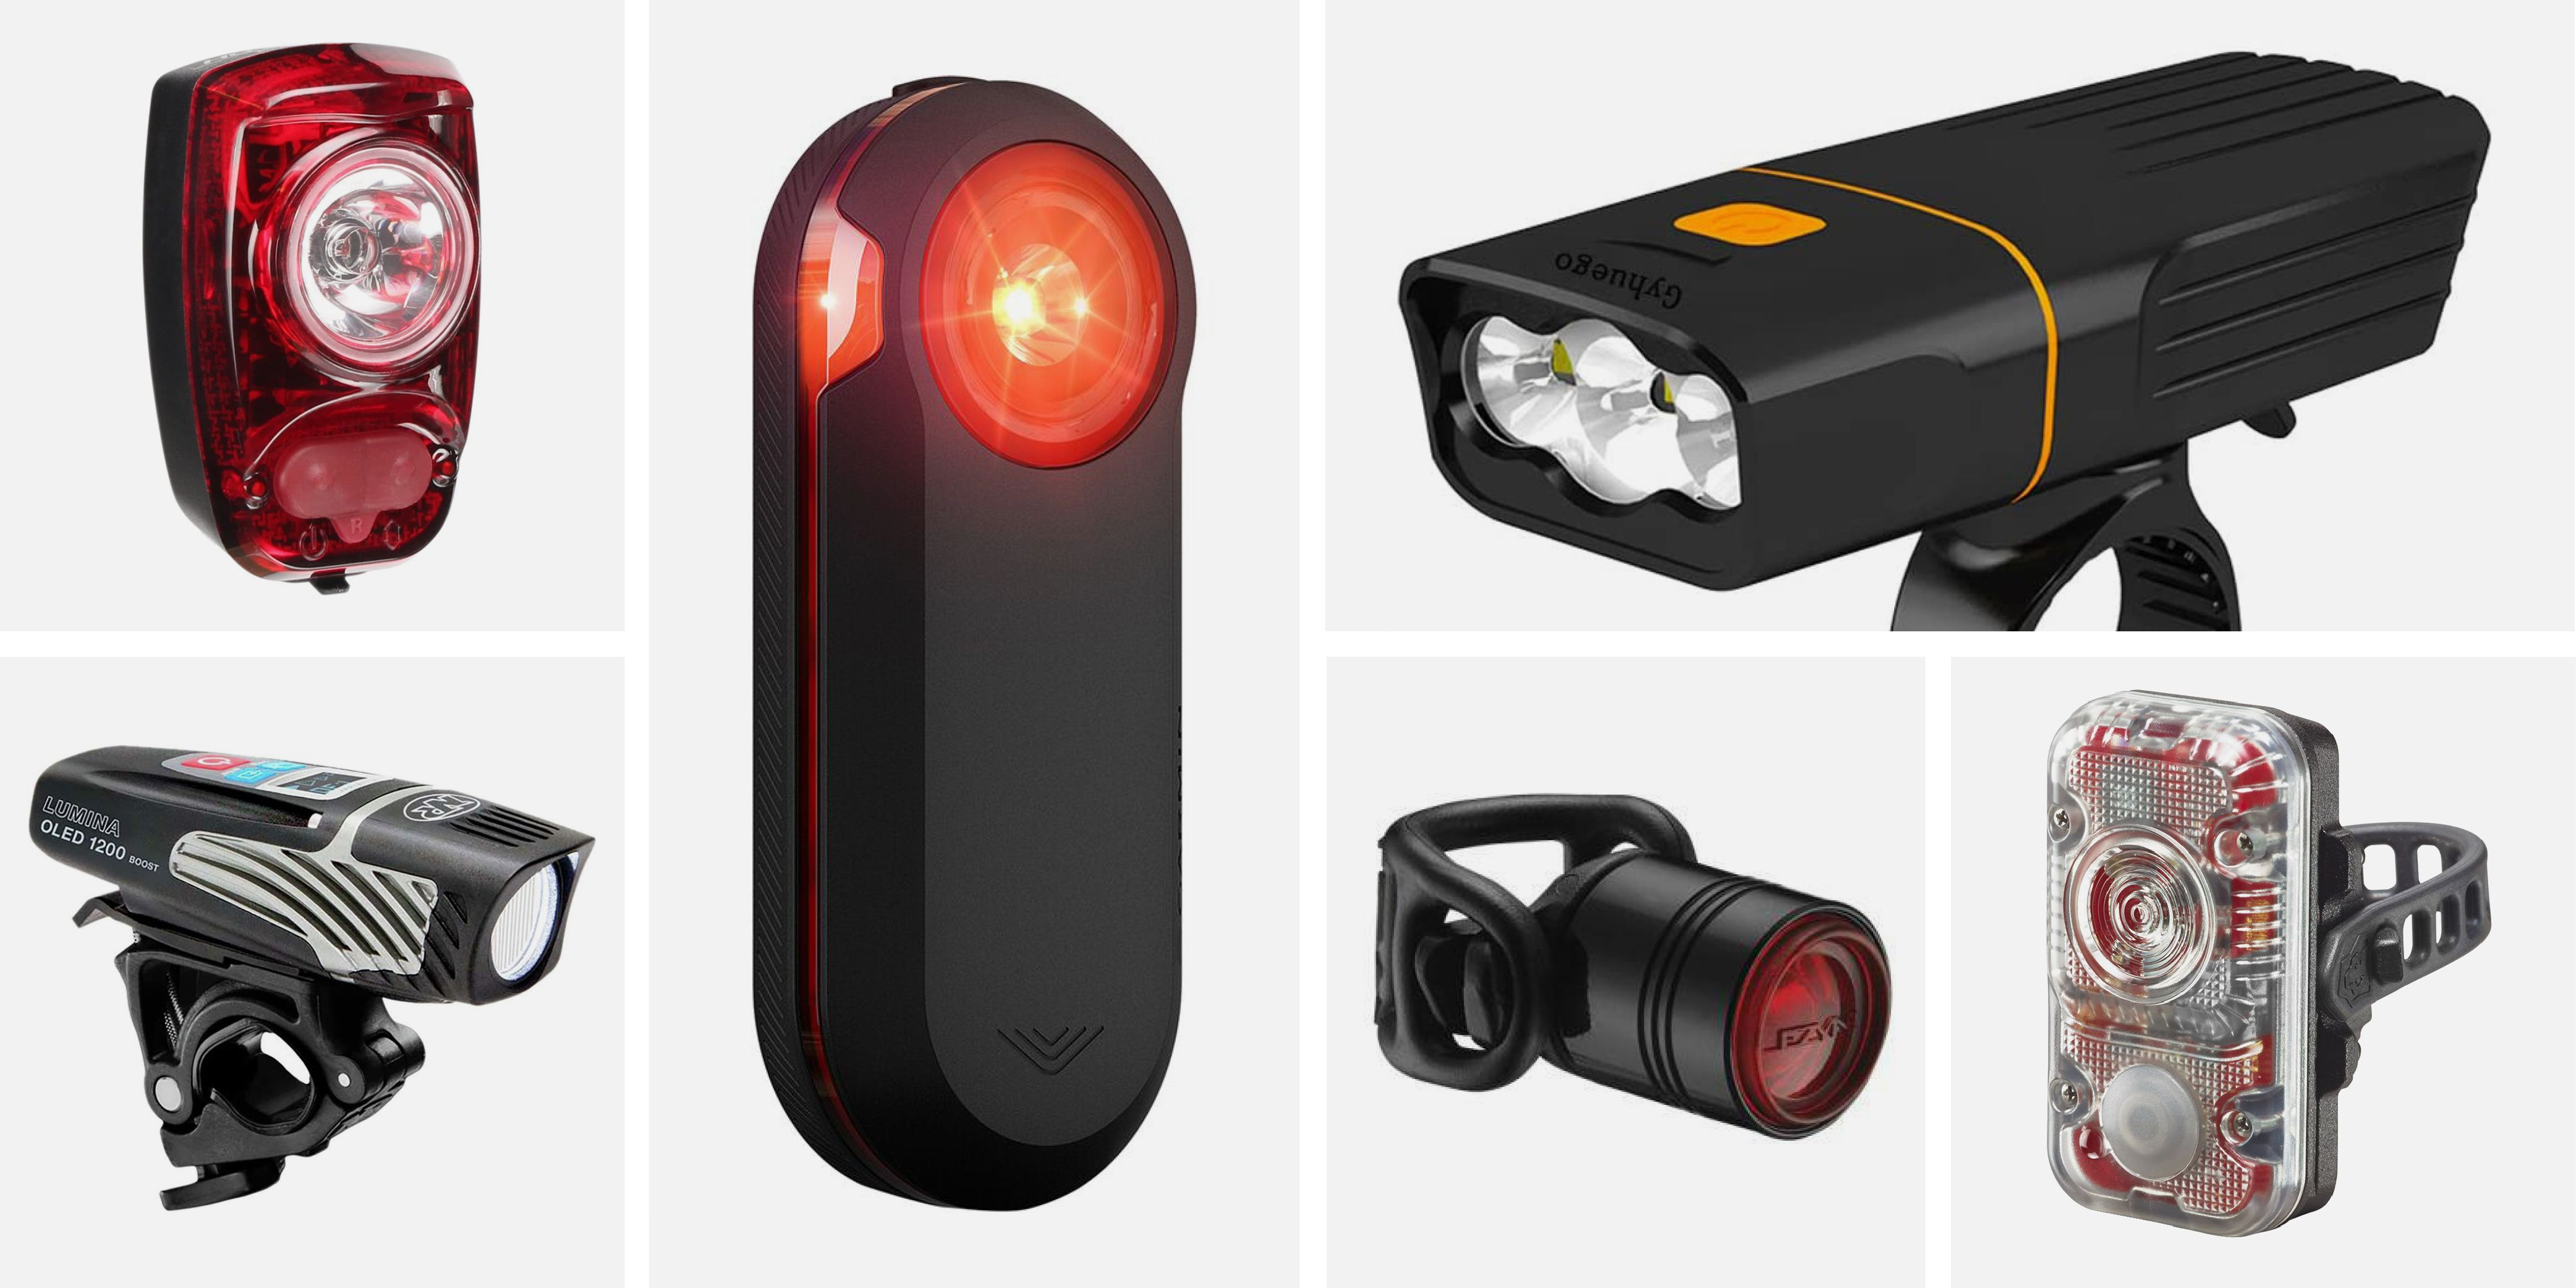 USB Rechargeable LED Bicycle Bike Front Head Light Rear Taillight Lamp Cycling